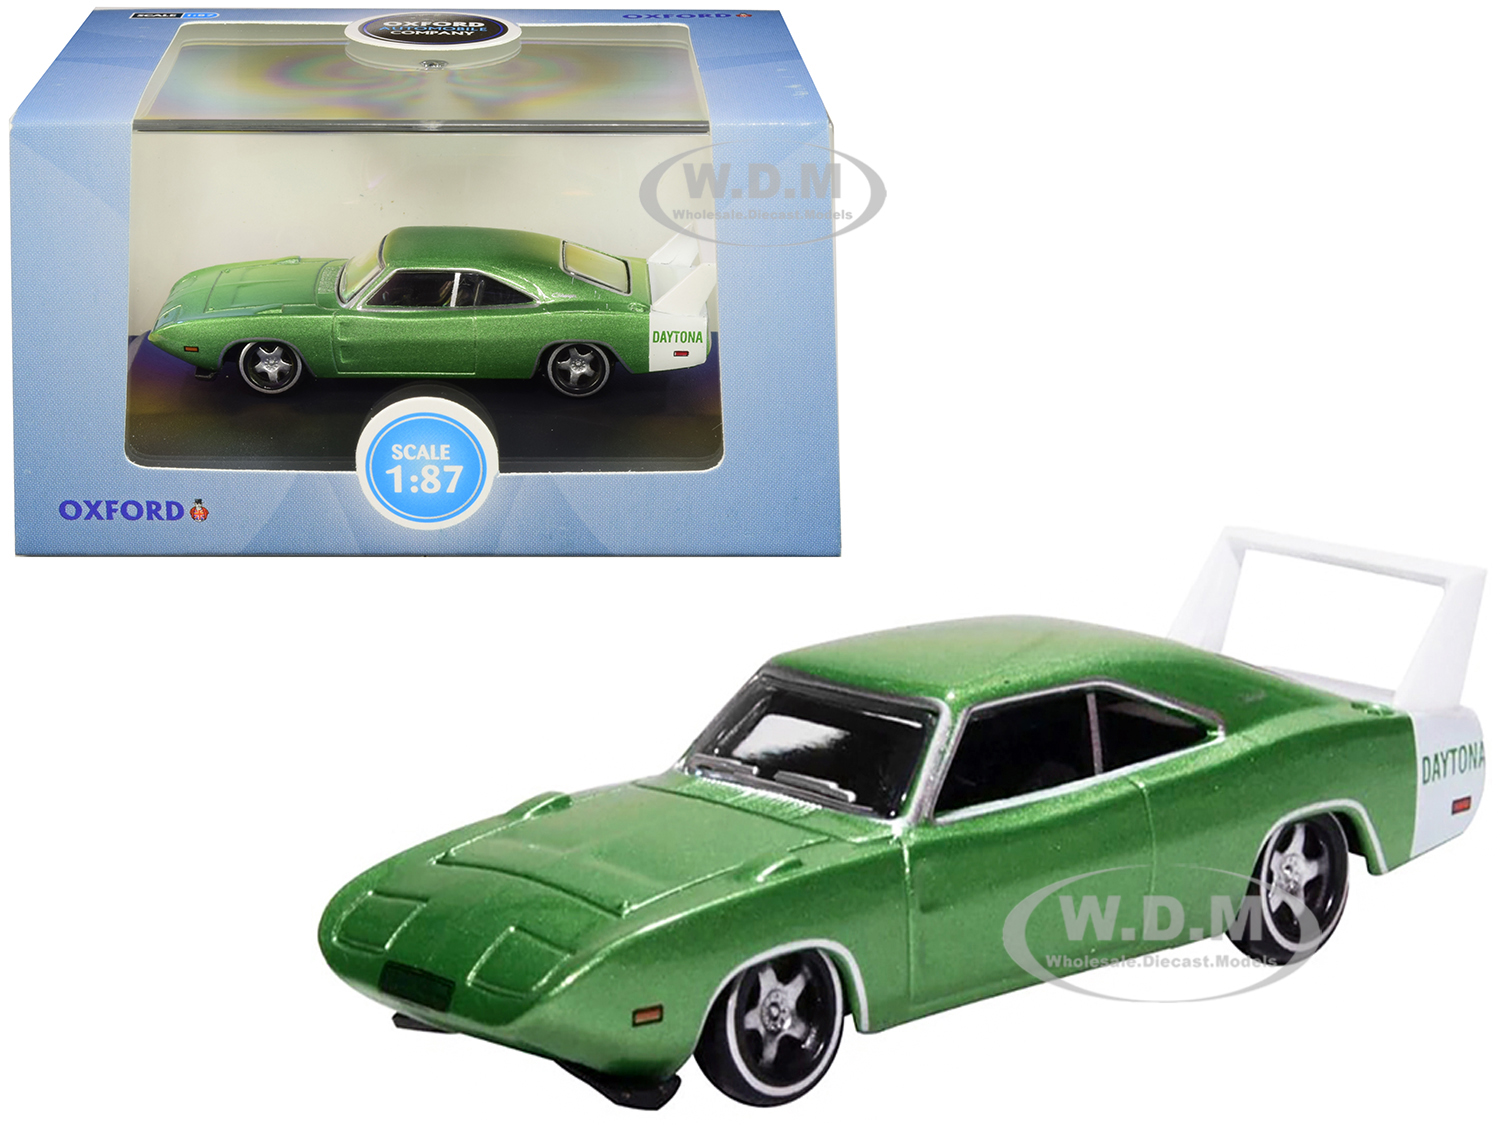 1969 Dodge Charger Daytona Metallic Bright Green with White Stripe 1/87 (HO) Scale Diecast Model Car by Oxford Diecast